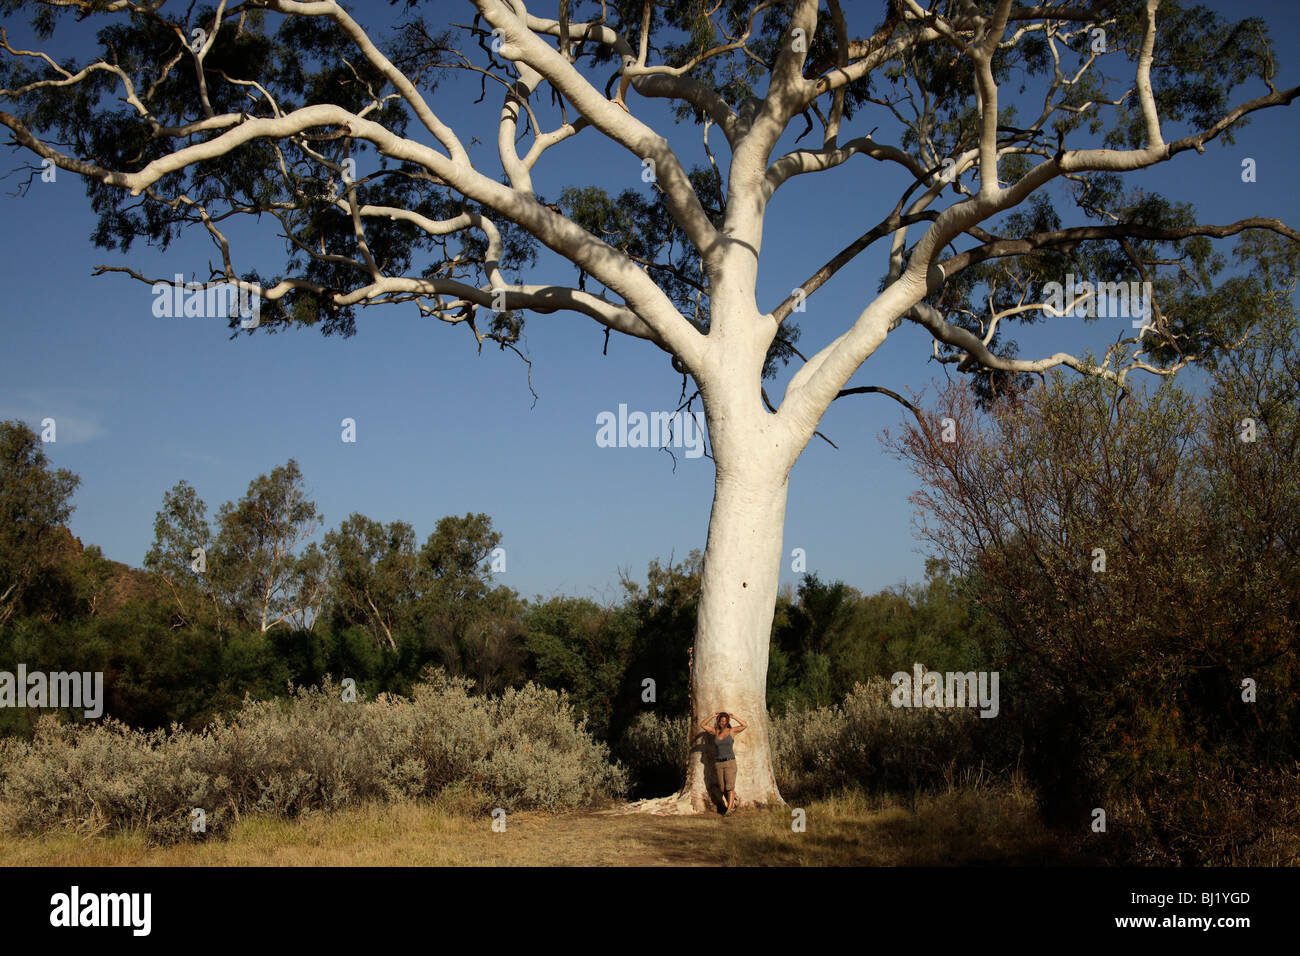 Giant Ghost Gum tree near Trephina Gorge, MacDonnell Ranges, Australia - Stock Image